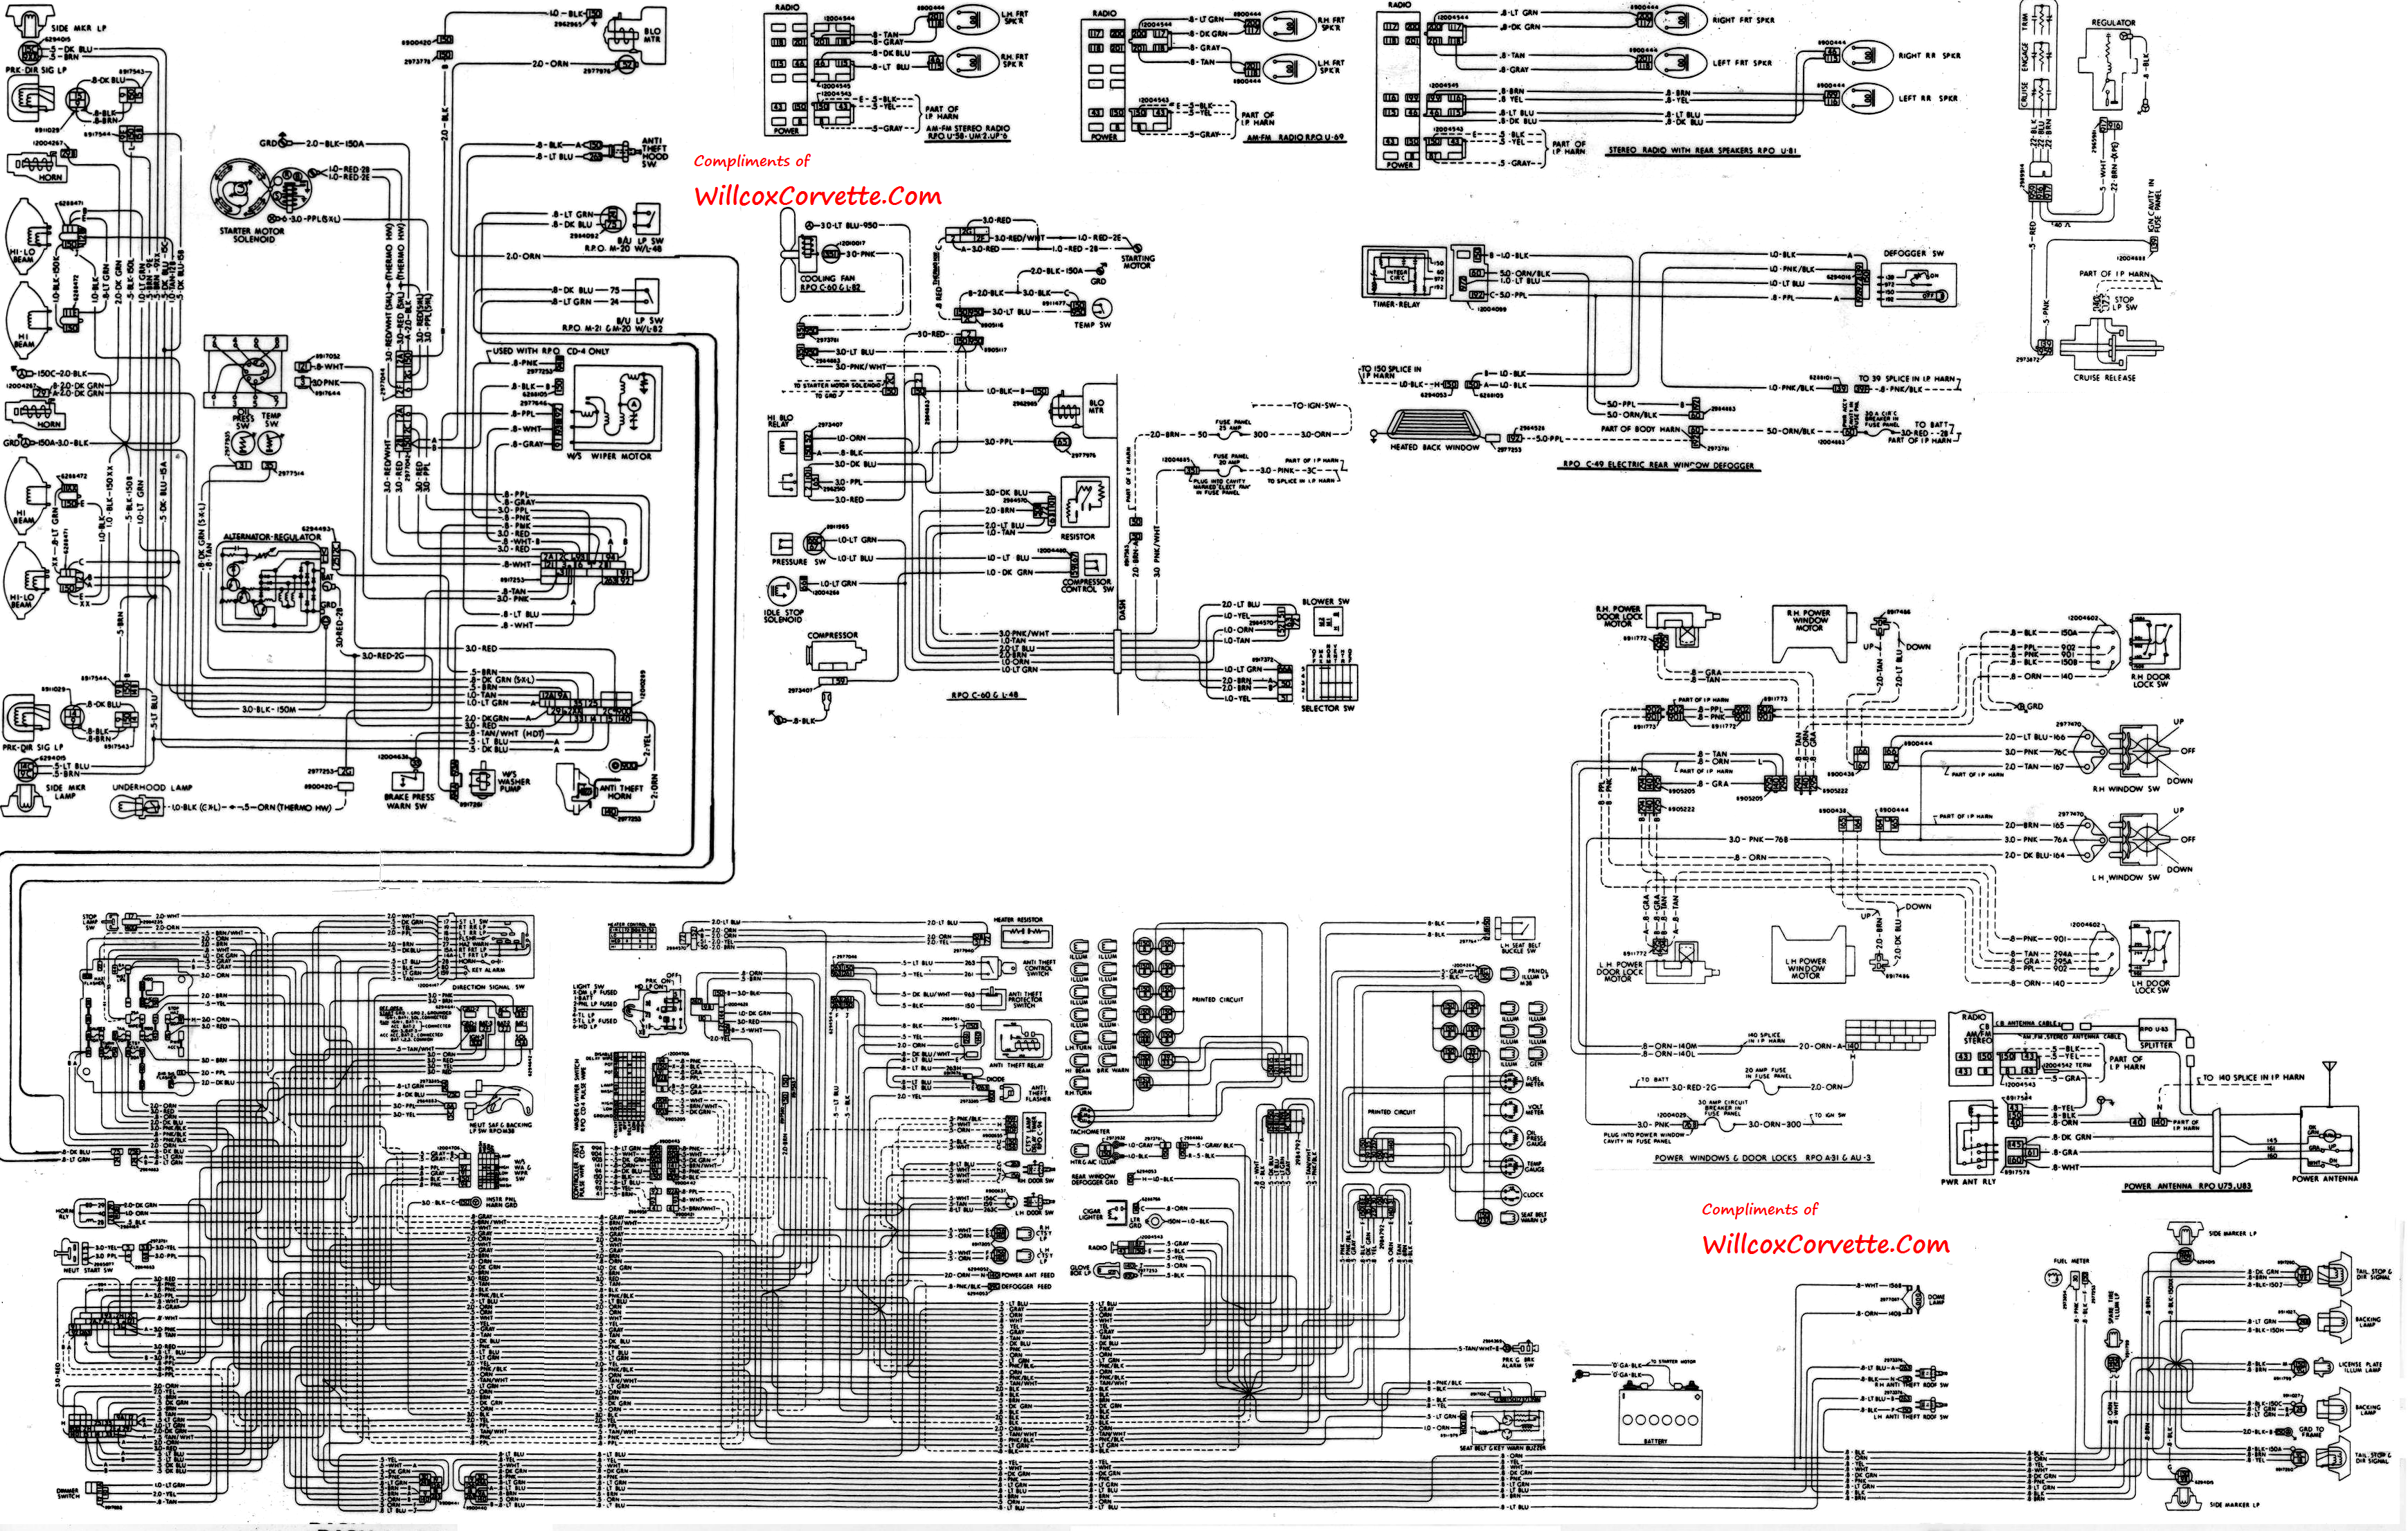 corvette ecm wiring electrical wiring diagrams rh 23 lowrysdriedmeat de 1986 Corvette Wiring Diagram 1985 Corvette ECM Wiring Diagram